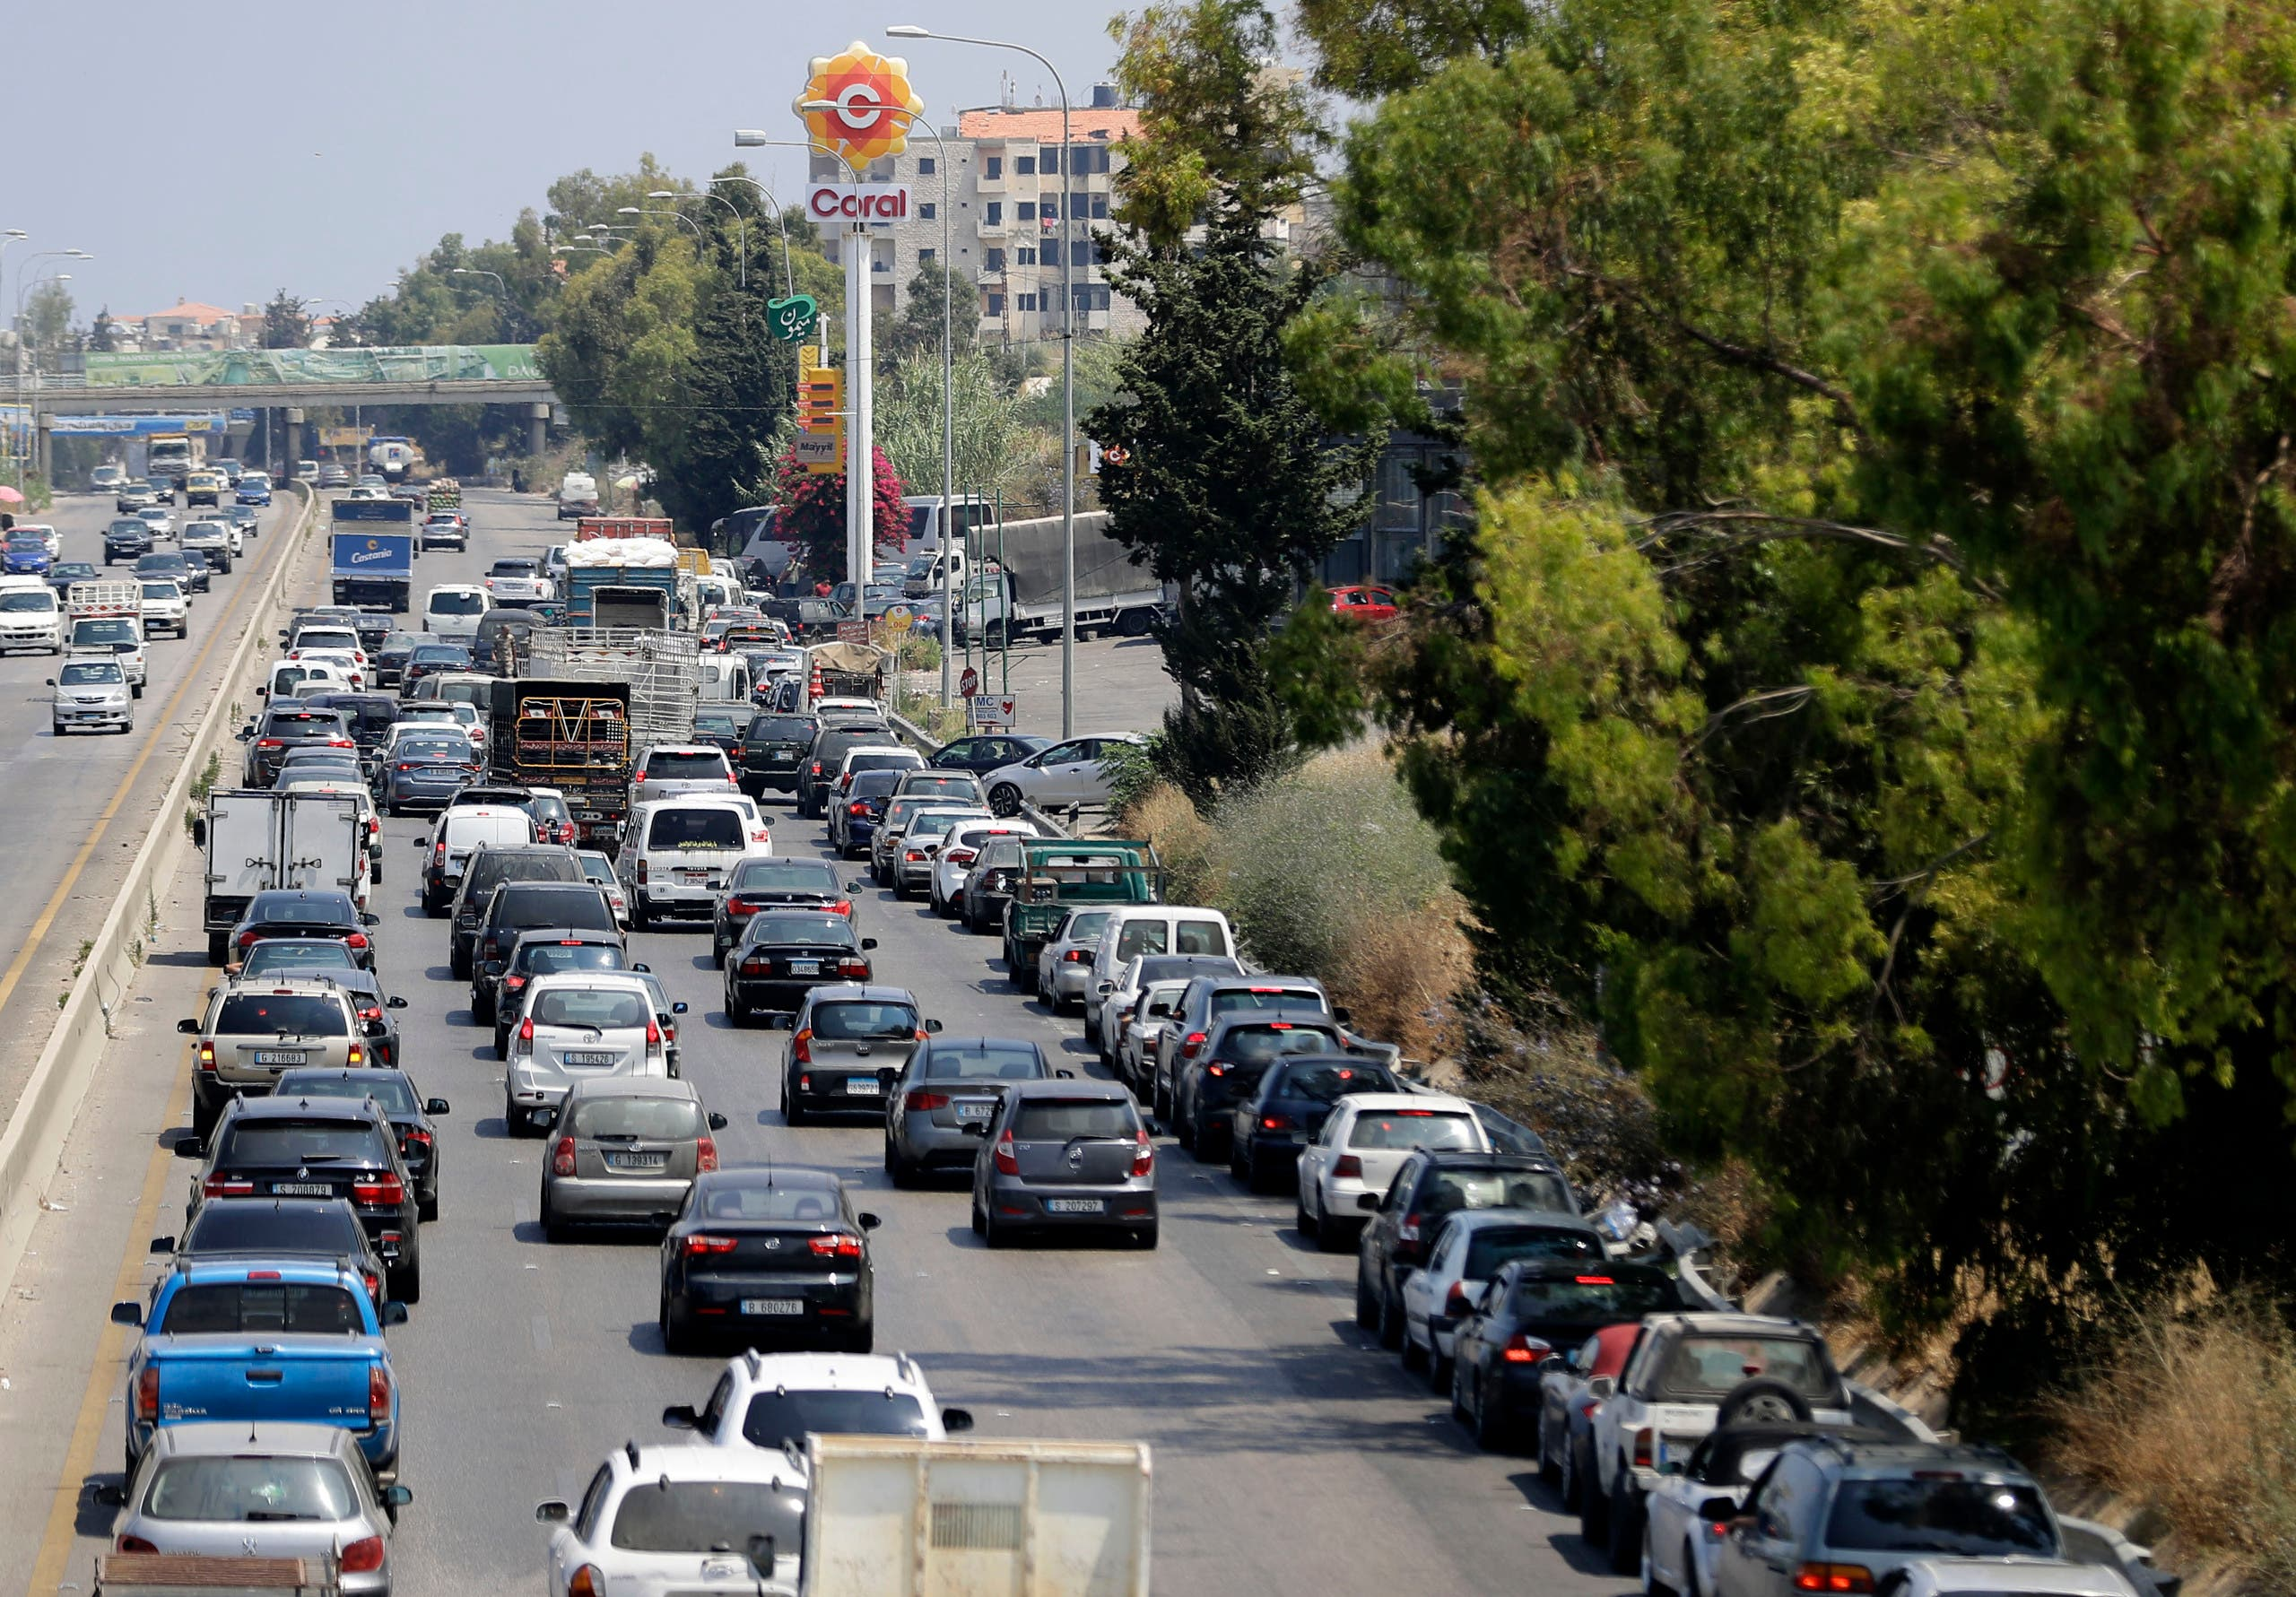 Vehicles on the right lane adjacent to the petrol station queue-up for fuel as traffic flows through the area of Naameh on the Beirut-Sidon highway, south of the Lebanese captial, on June 24, 2021 amidst severe fuel shortages. (File photo: AFP)